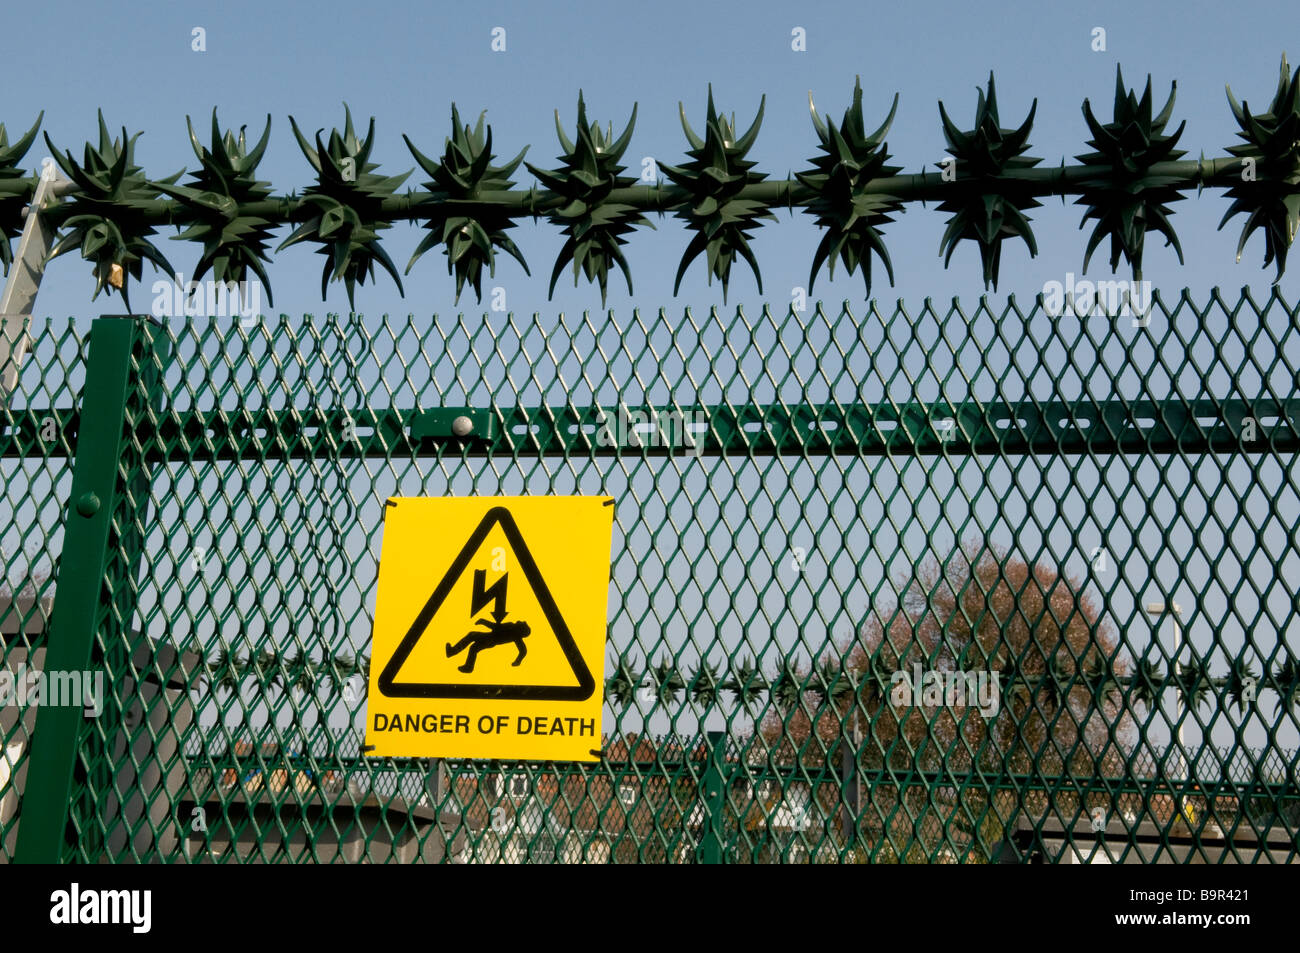 SECURITY FENCE AND WARNING SIGN ON AN ELECTRICITY SUB-STATION. SIGN READS DANGER OF DEATH. - Stock Image